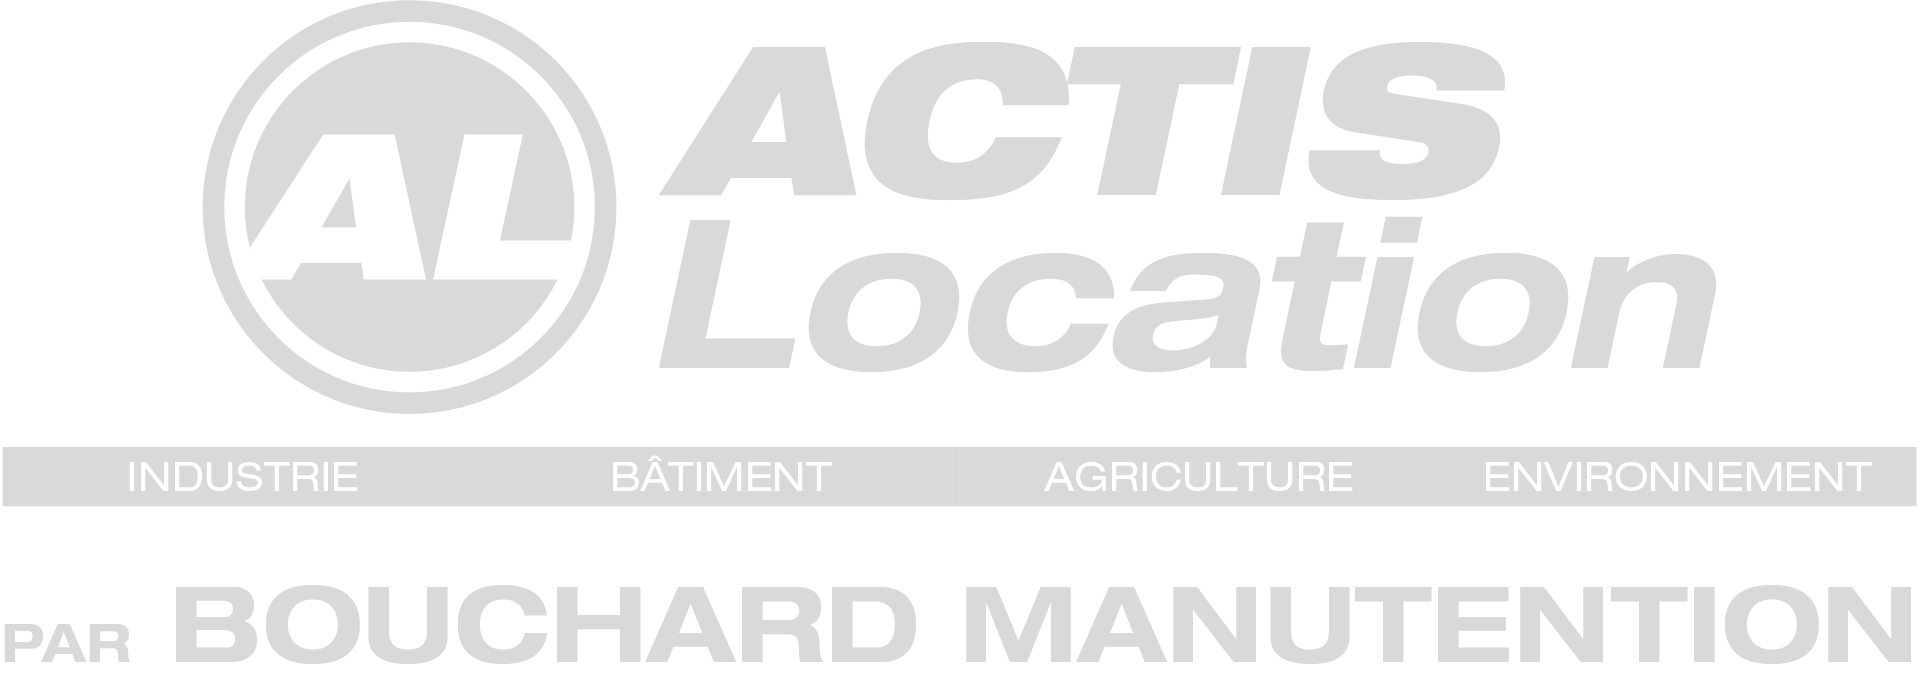 ACTIS Location par Bouchard Manutention